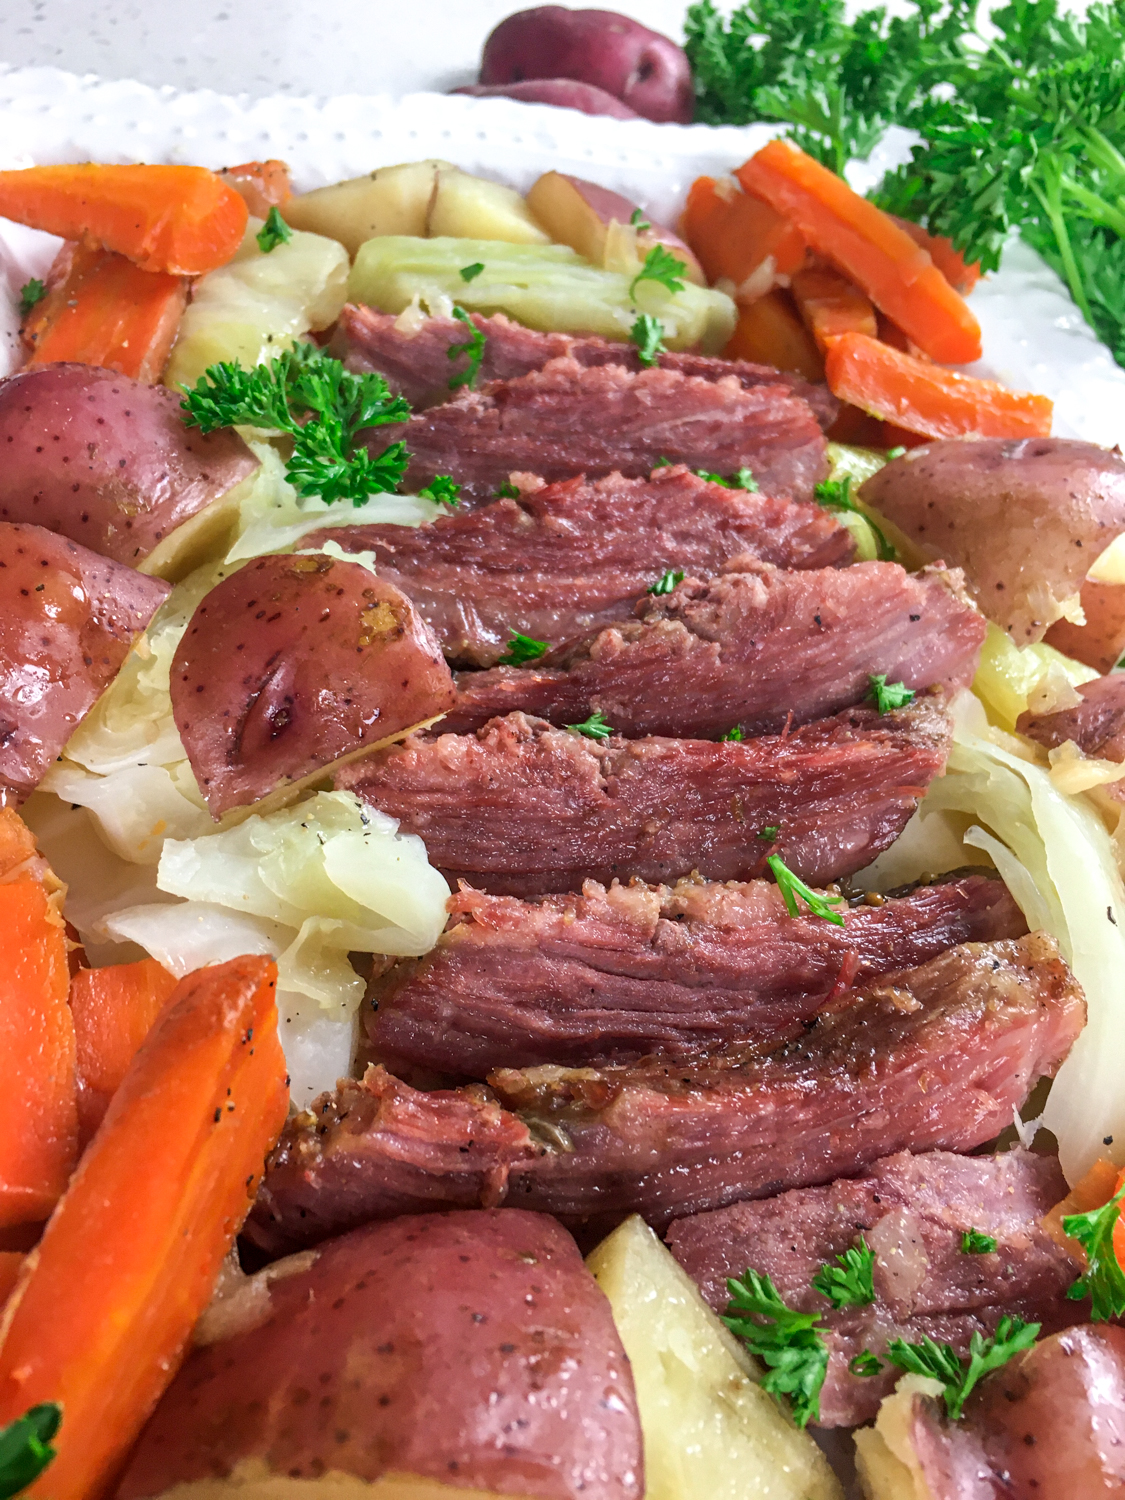 How to Make Instant Pot Corned Beef and Cabbage for St. Patrick's Day